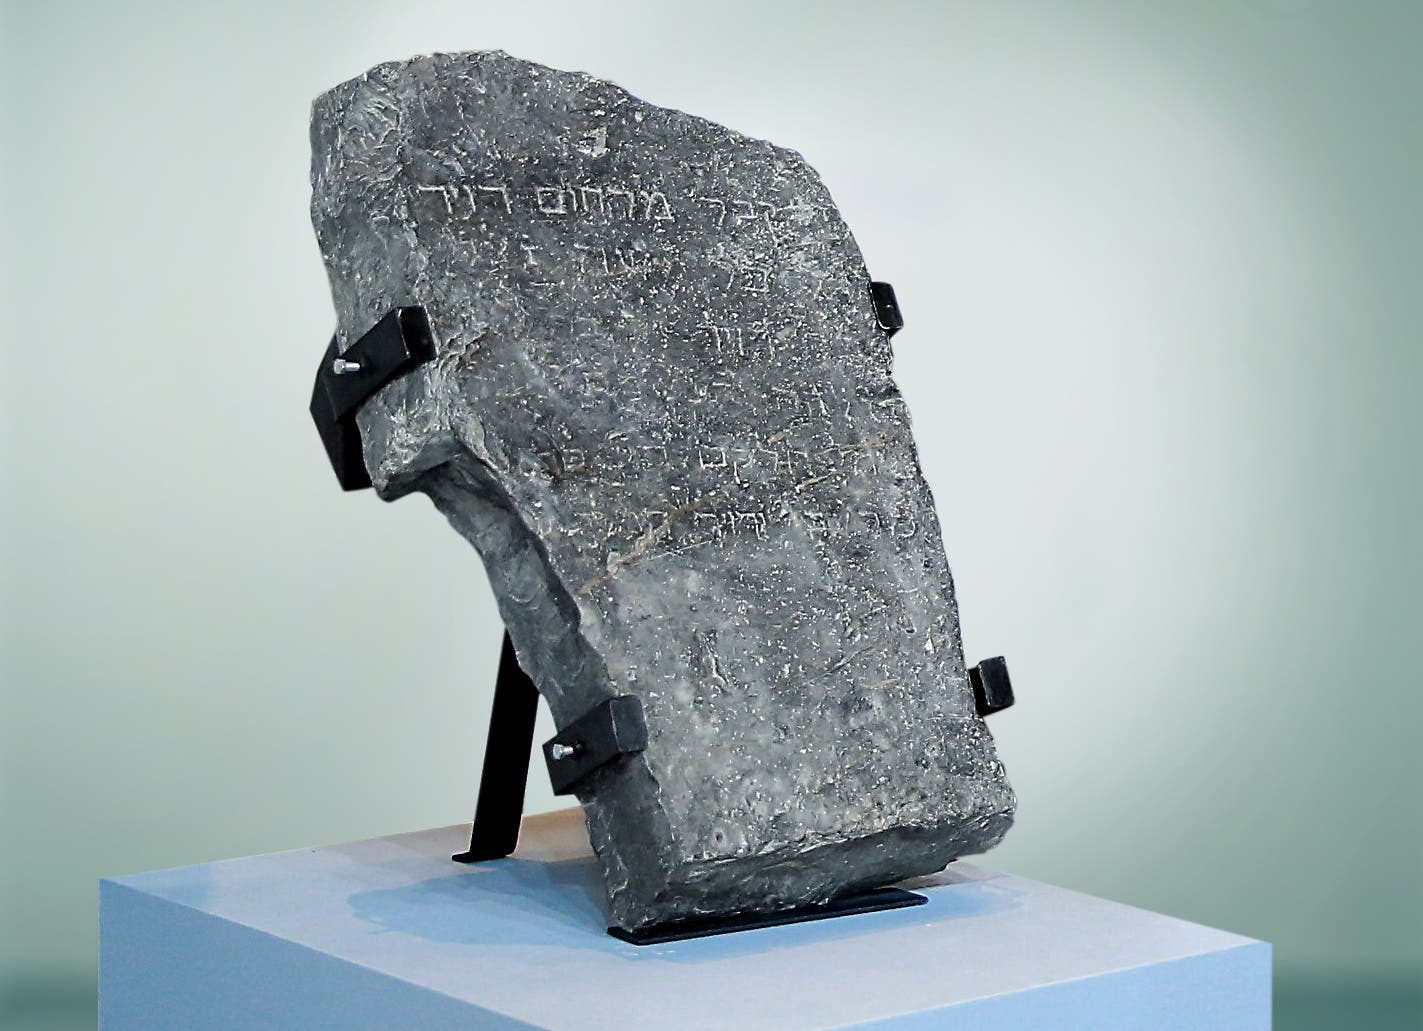 Jewish gravestone discovered in the area of Shamal. (Courtesy: Ras Al Khaimah Department of Antiquities and Museums)